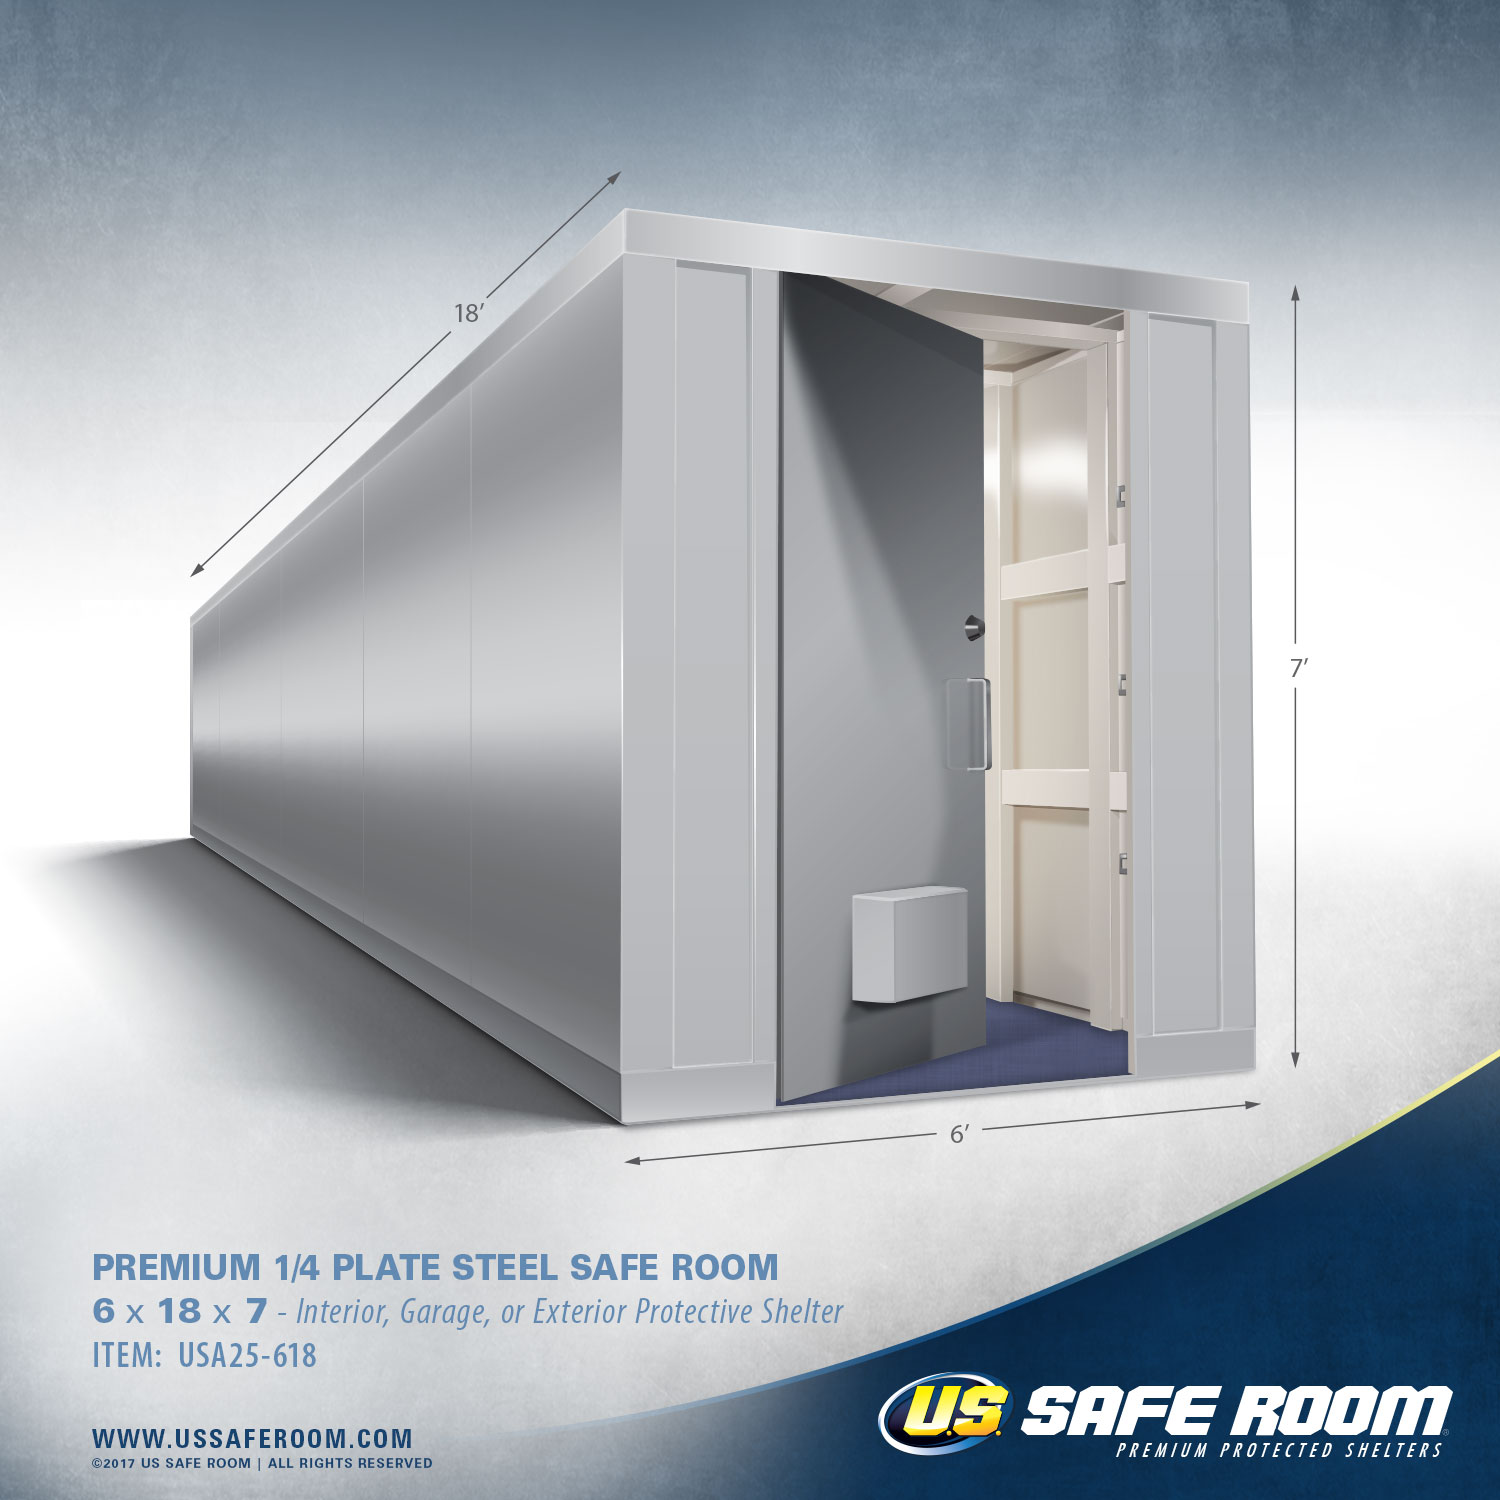 Steel Safe Room 6 x 18